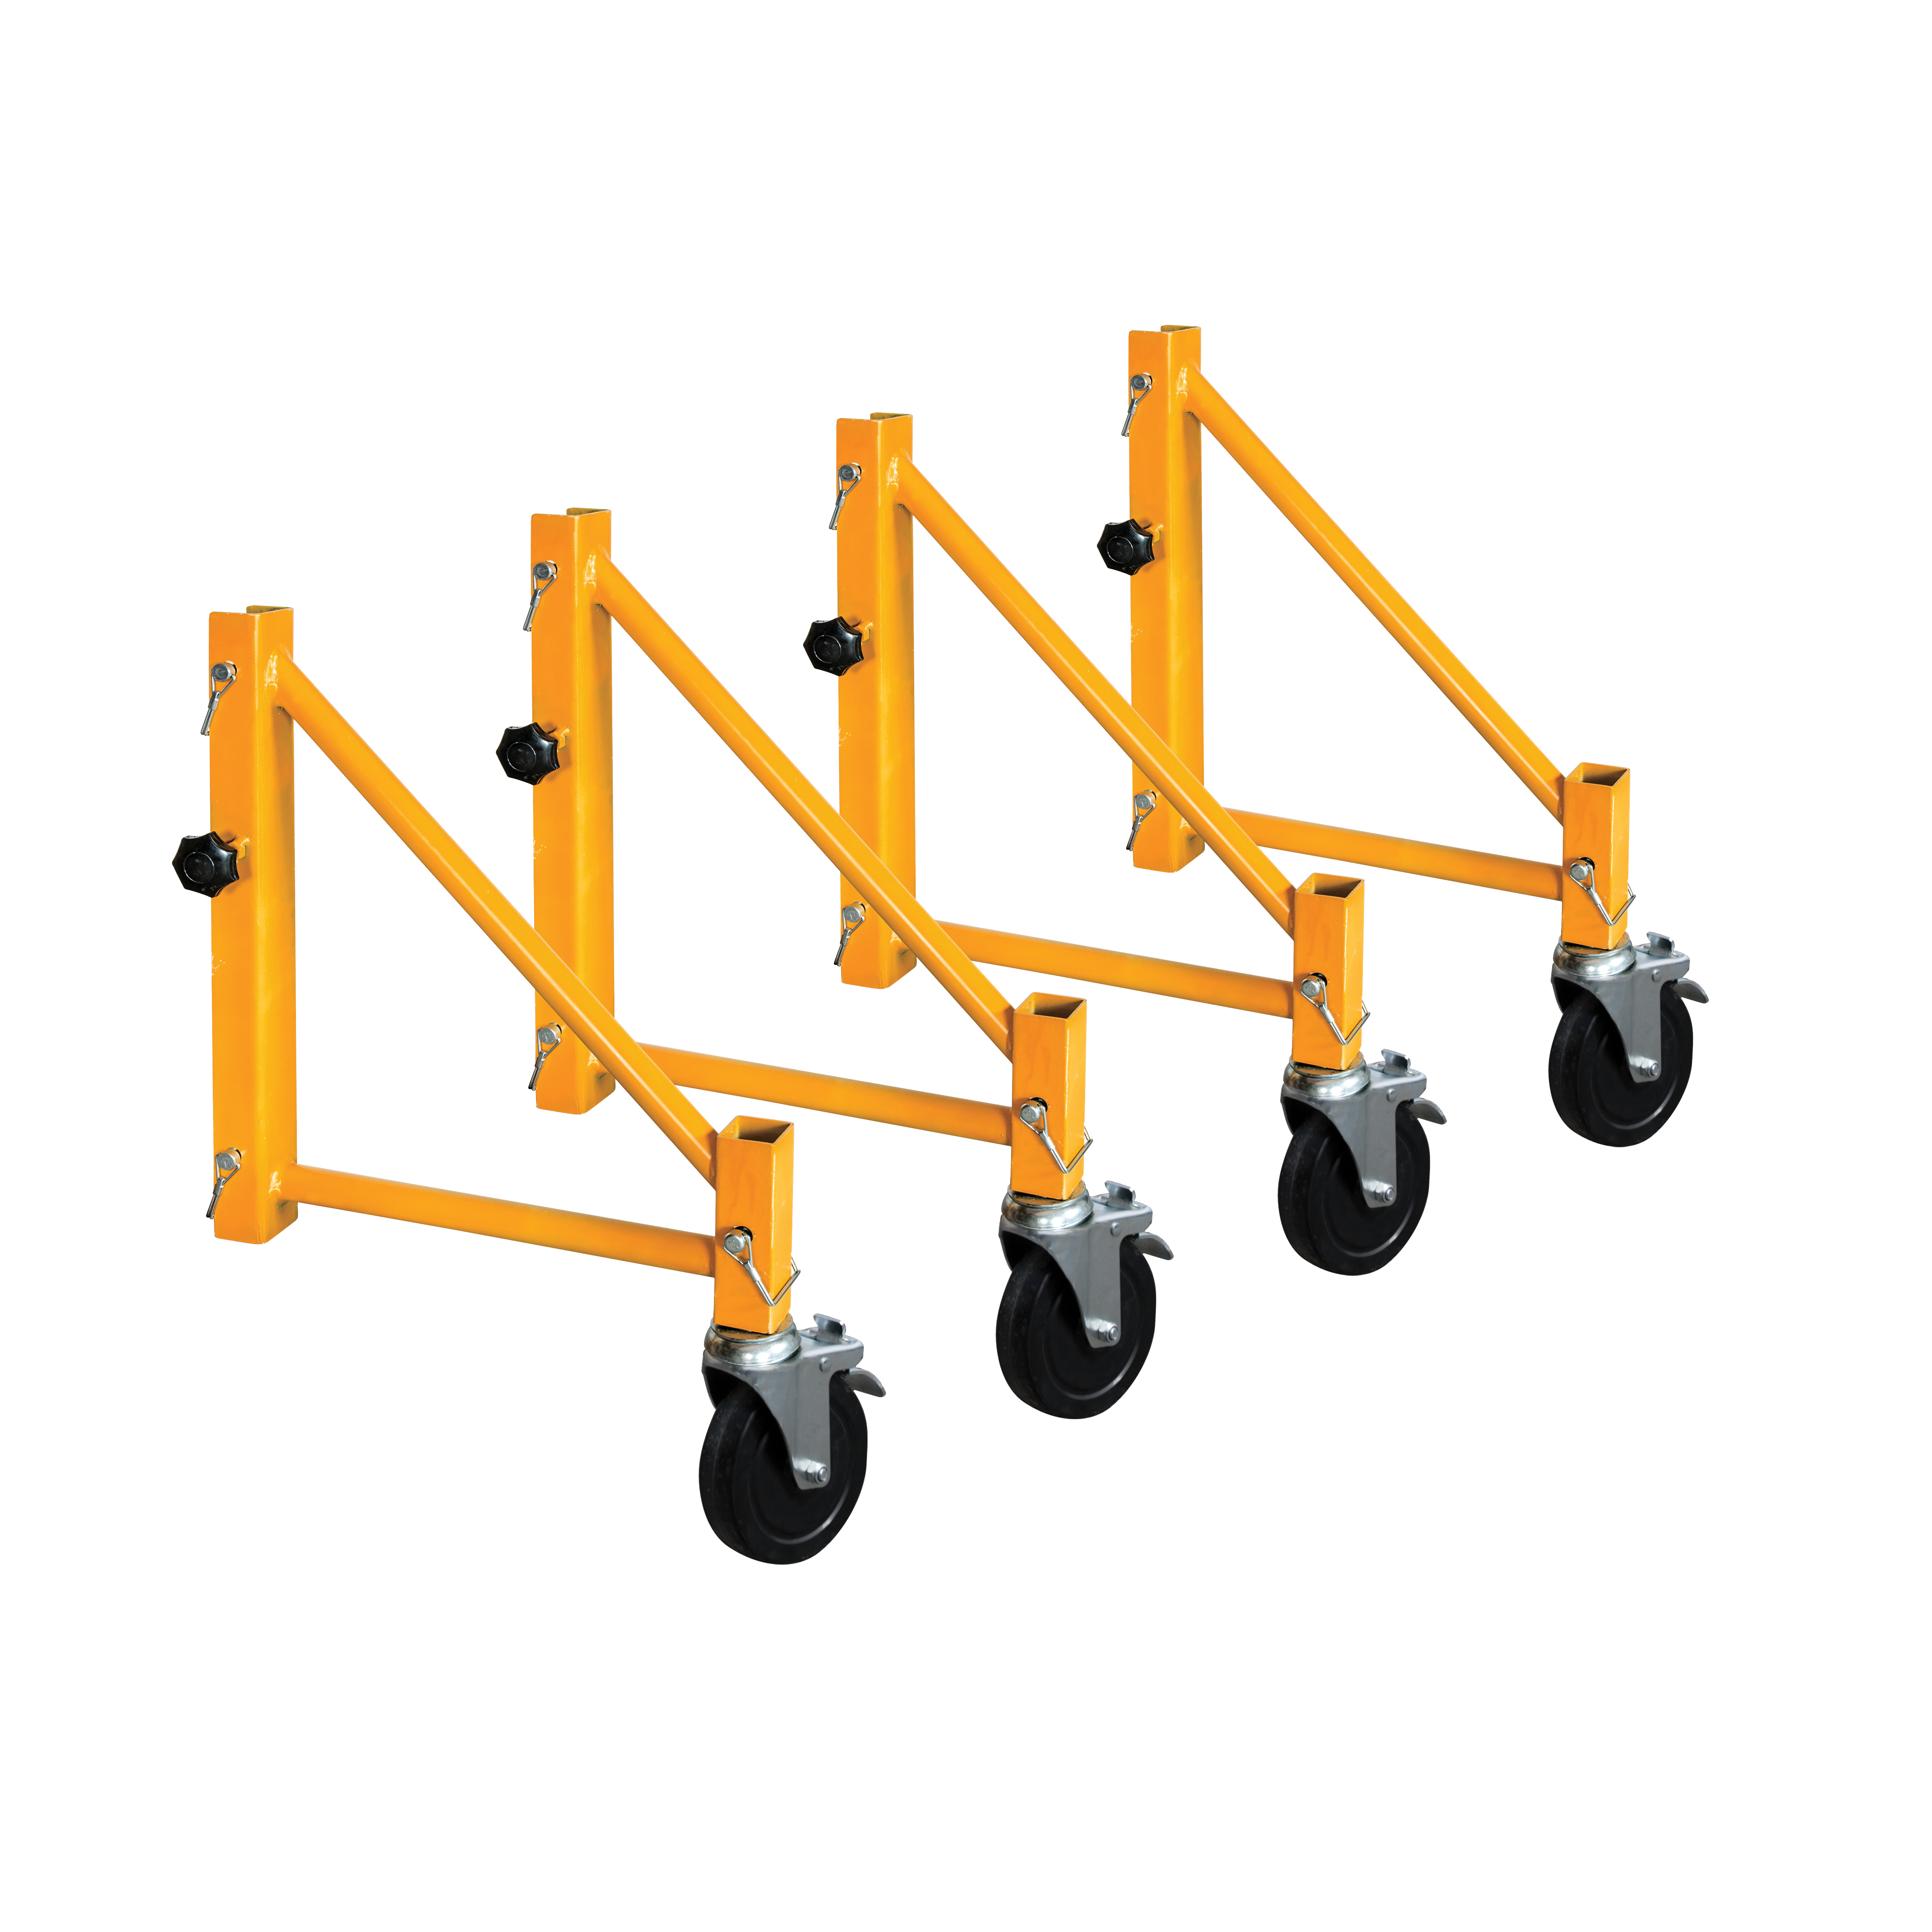 Picture of METALTECH Jobsite I-CISO4 Outrigger Set, Steel, Powder-Coated